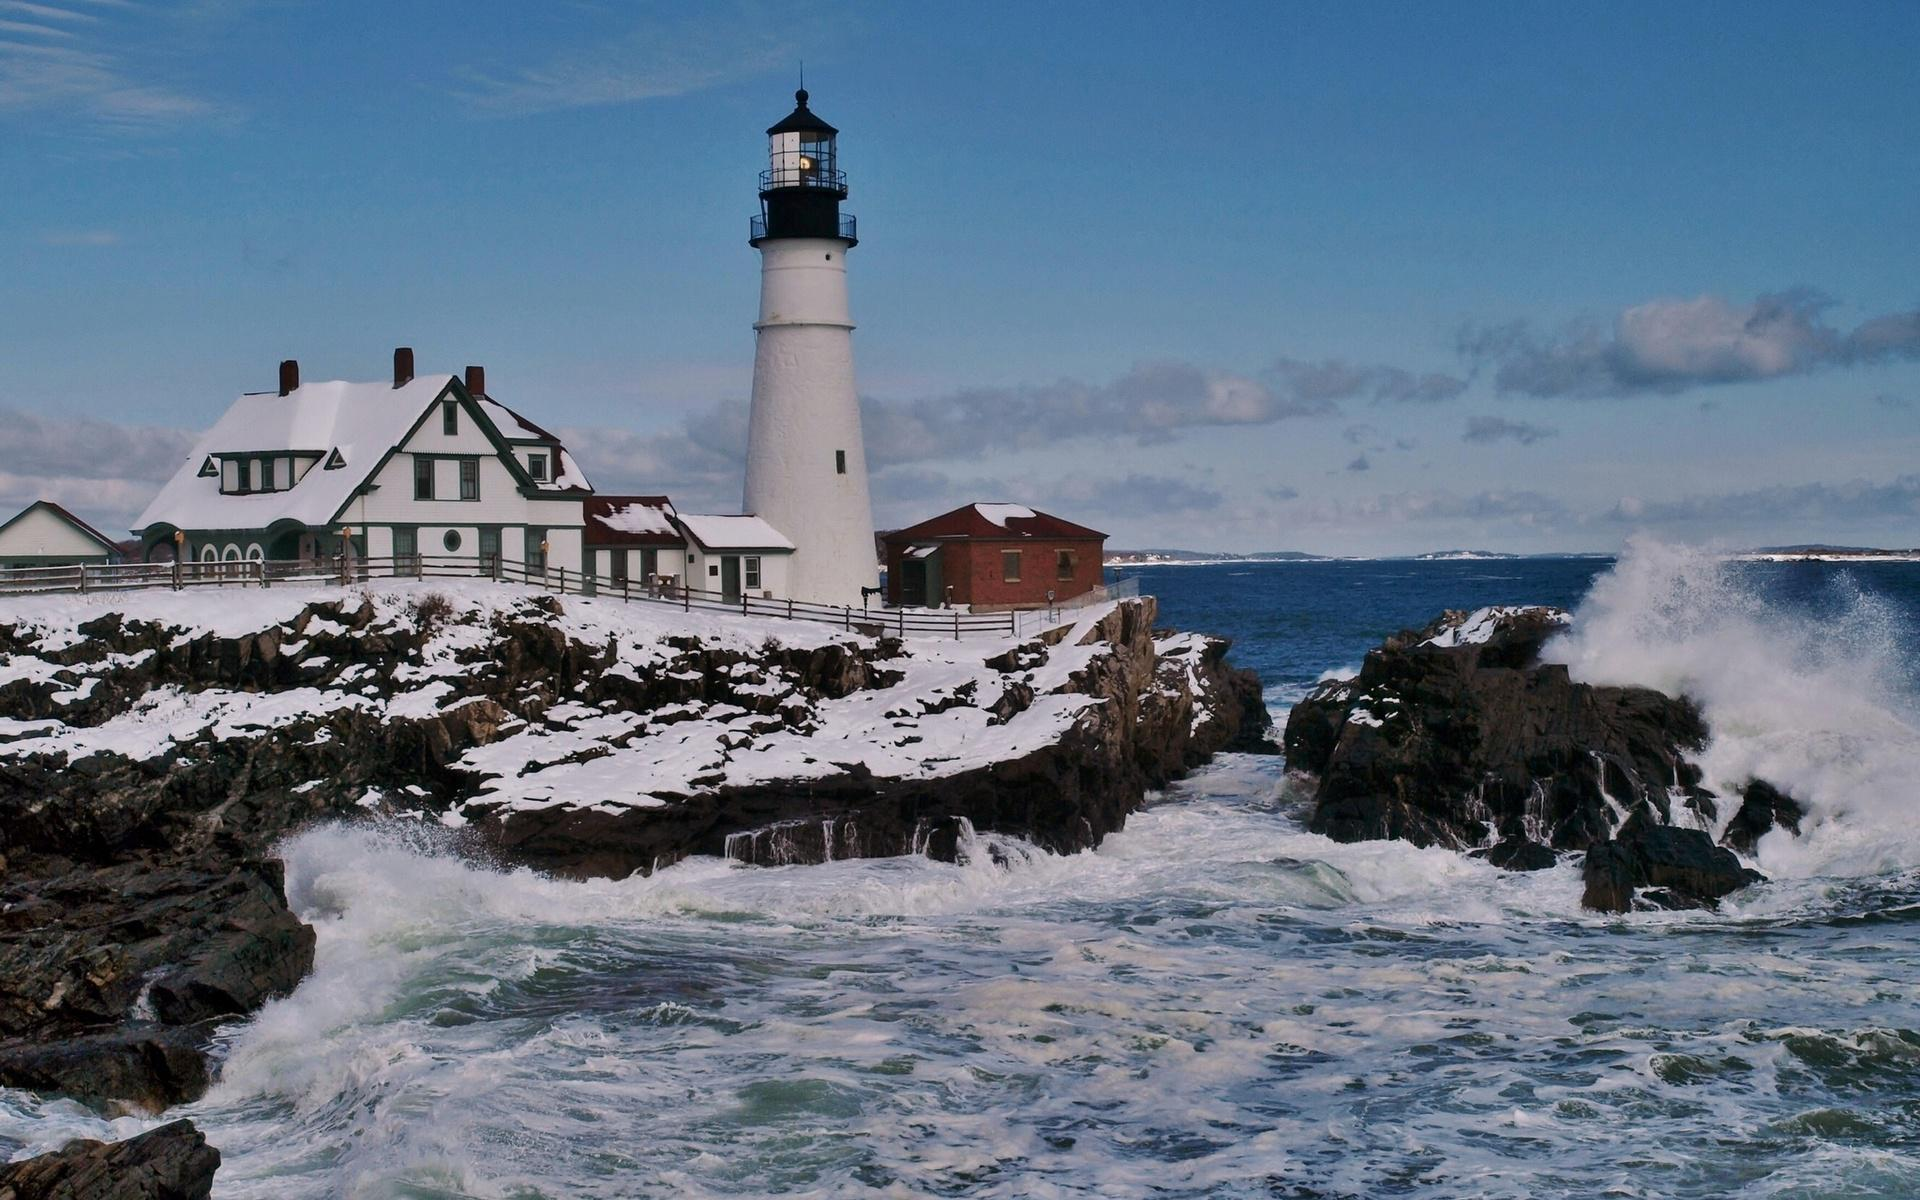 Lighthouse on a rough seashore in winter   163879   High Quality 1920x1200